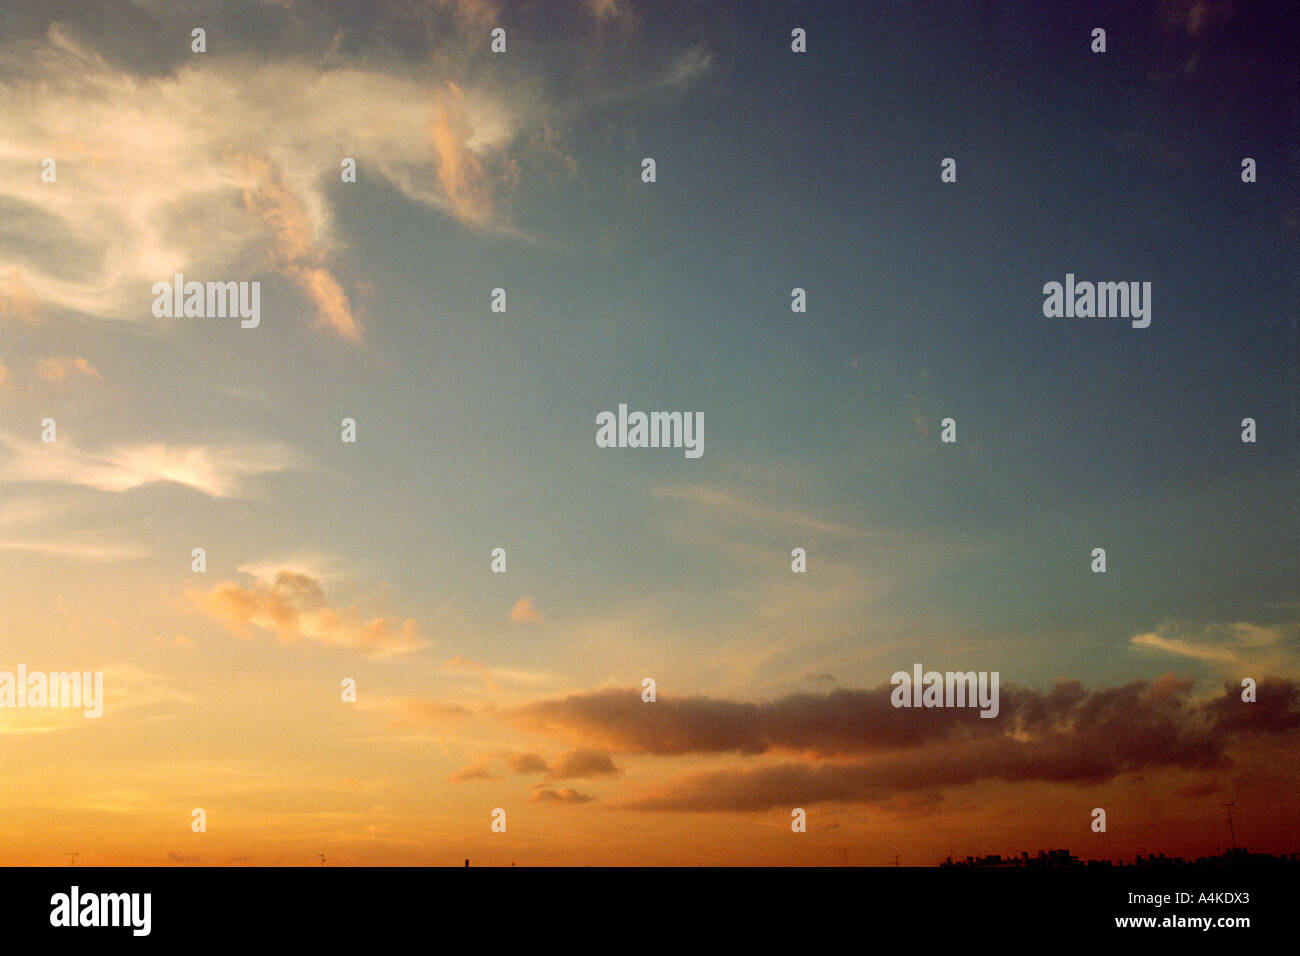 Sky at sunset - Stock Image